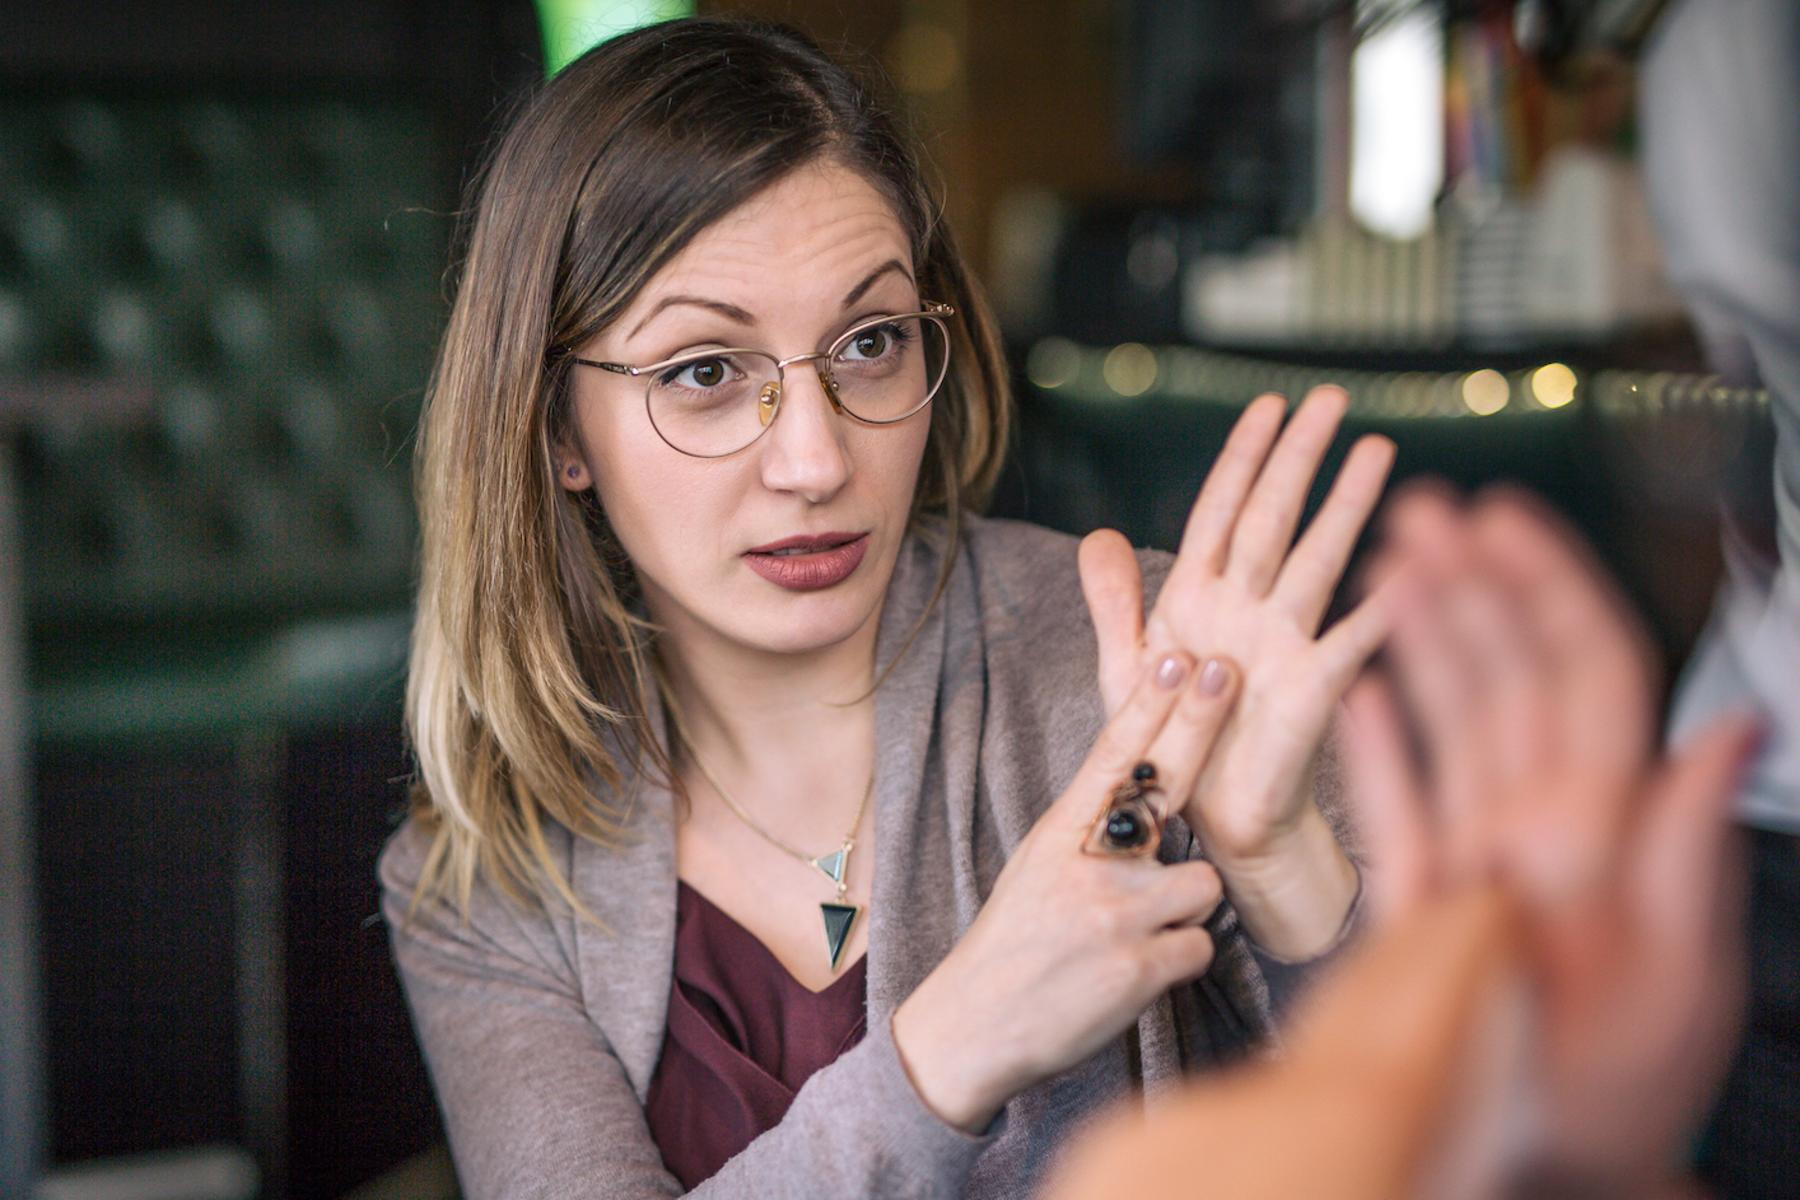 Close up picture of a woman communicating in sign language